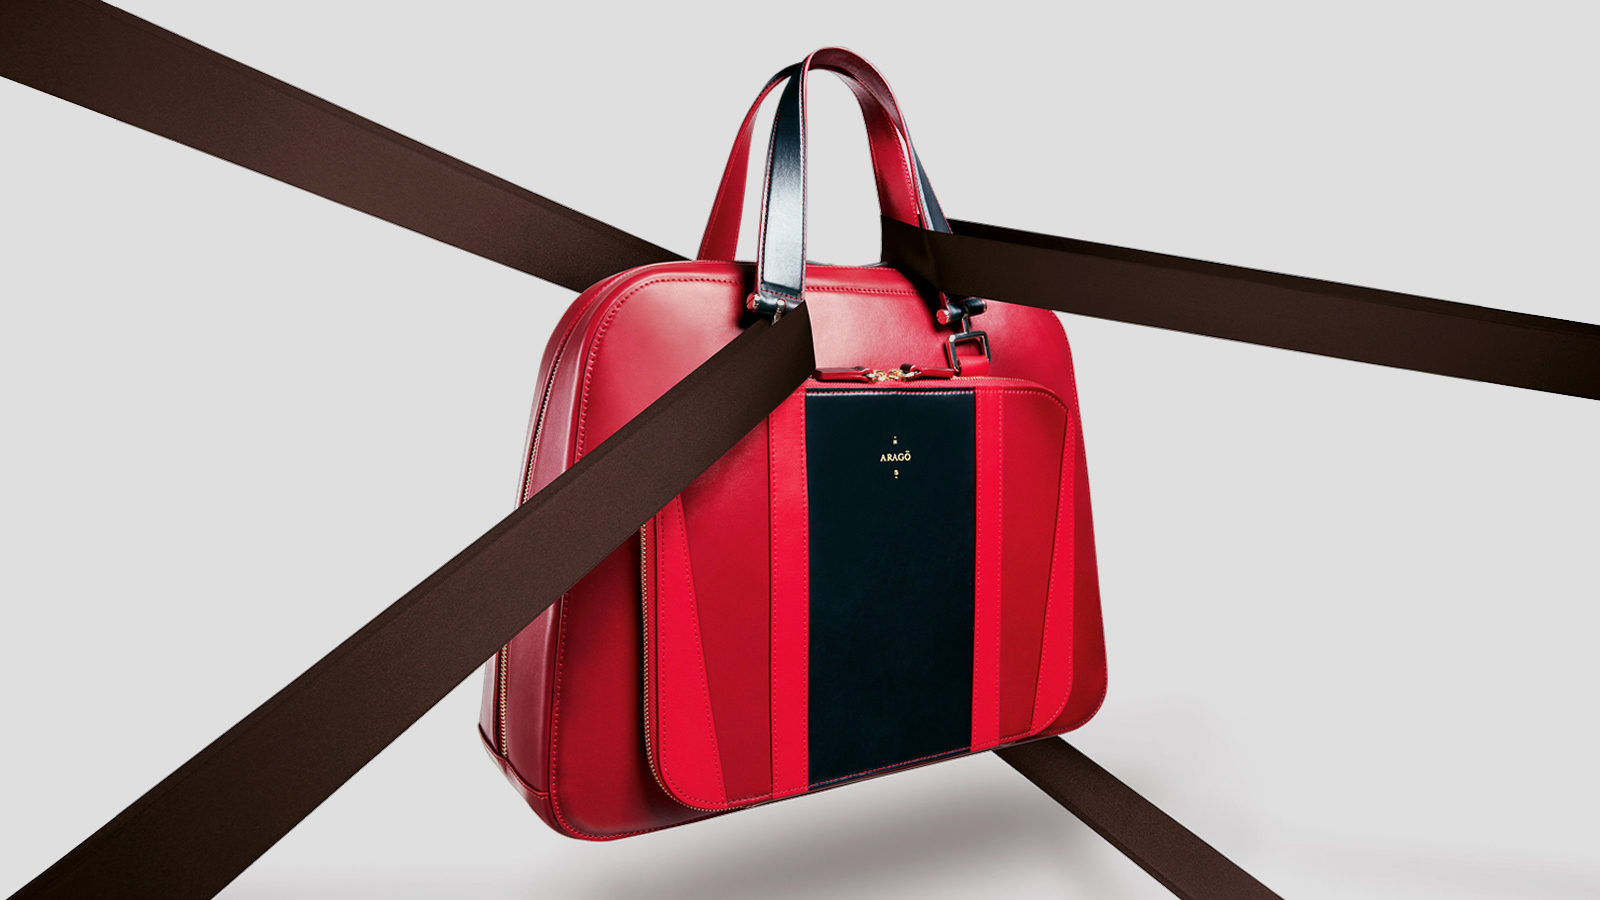 17_arago-bags-art-direction